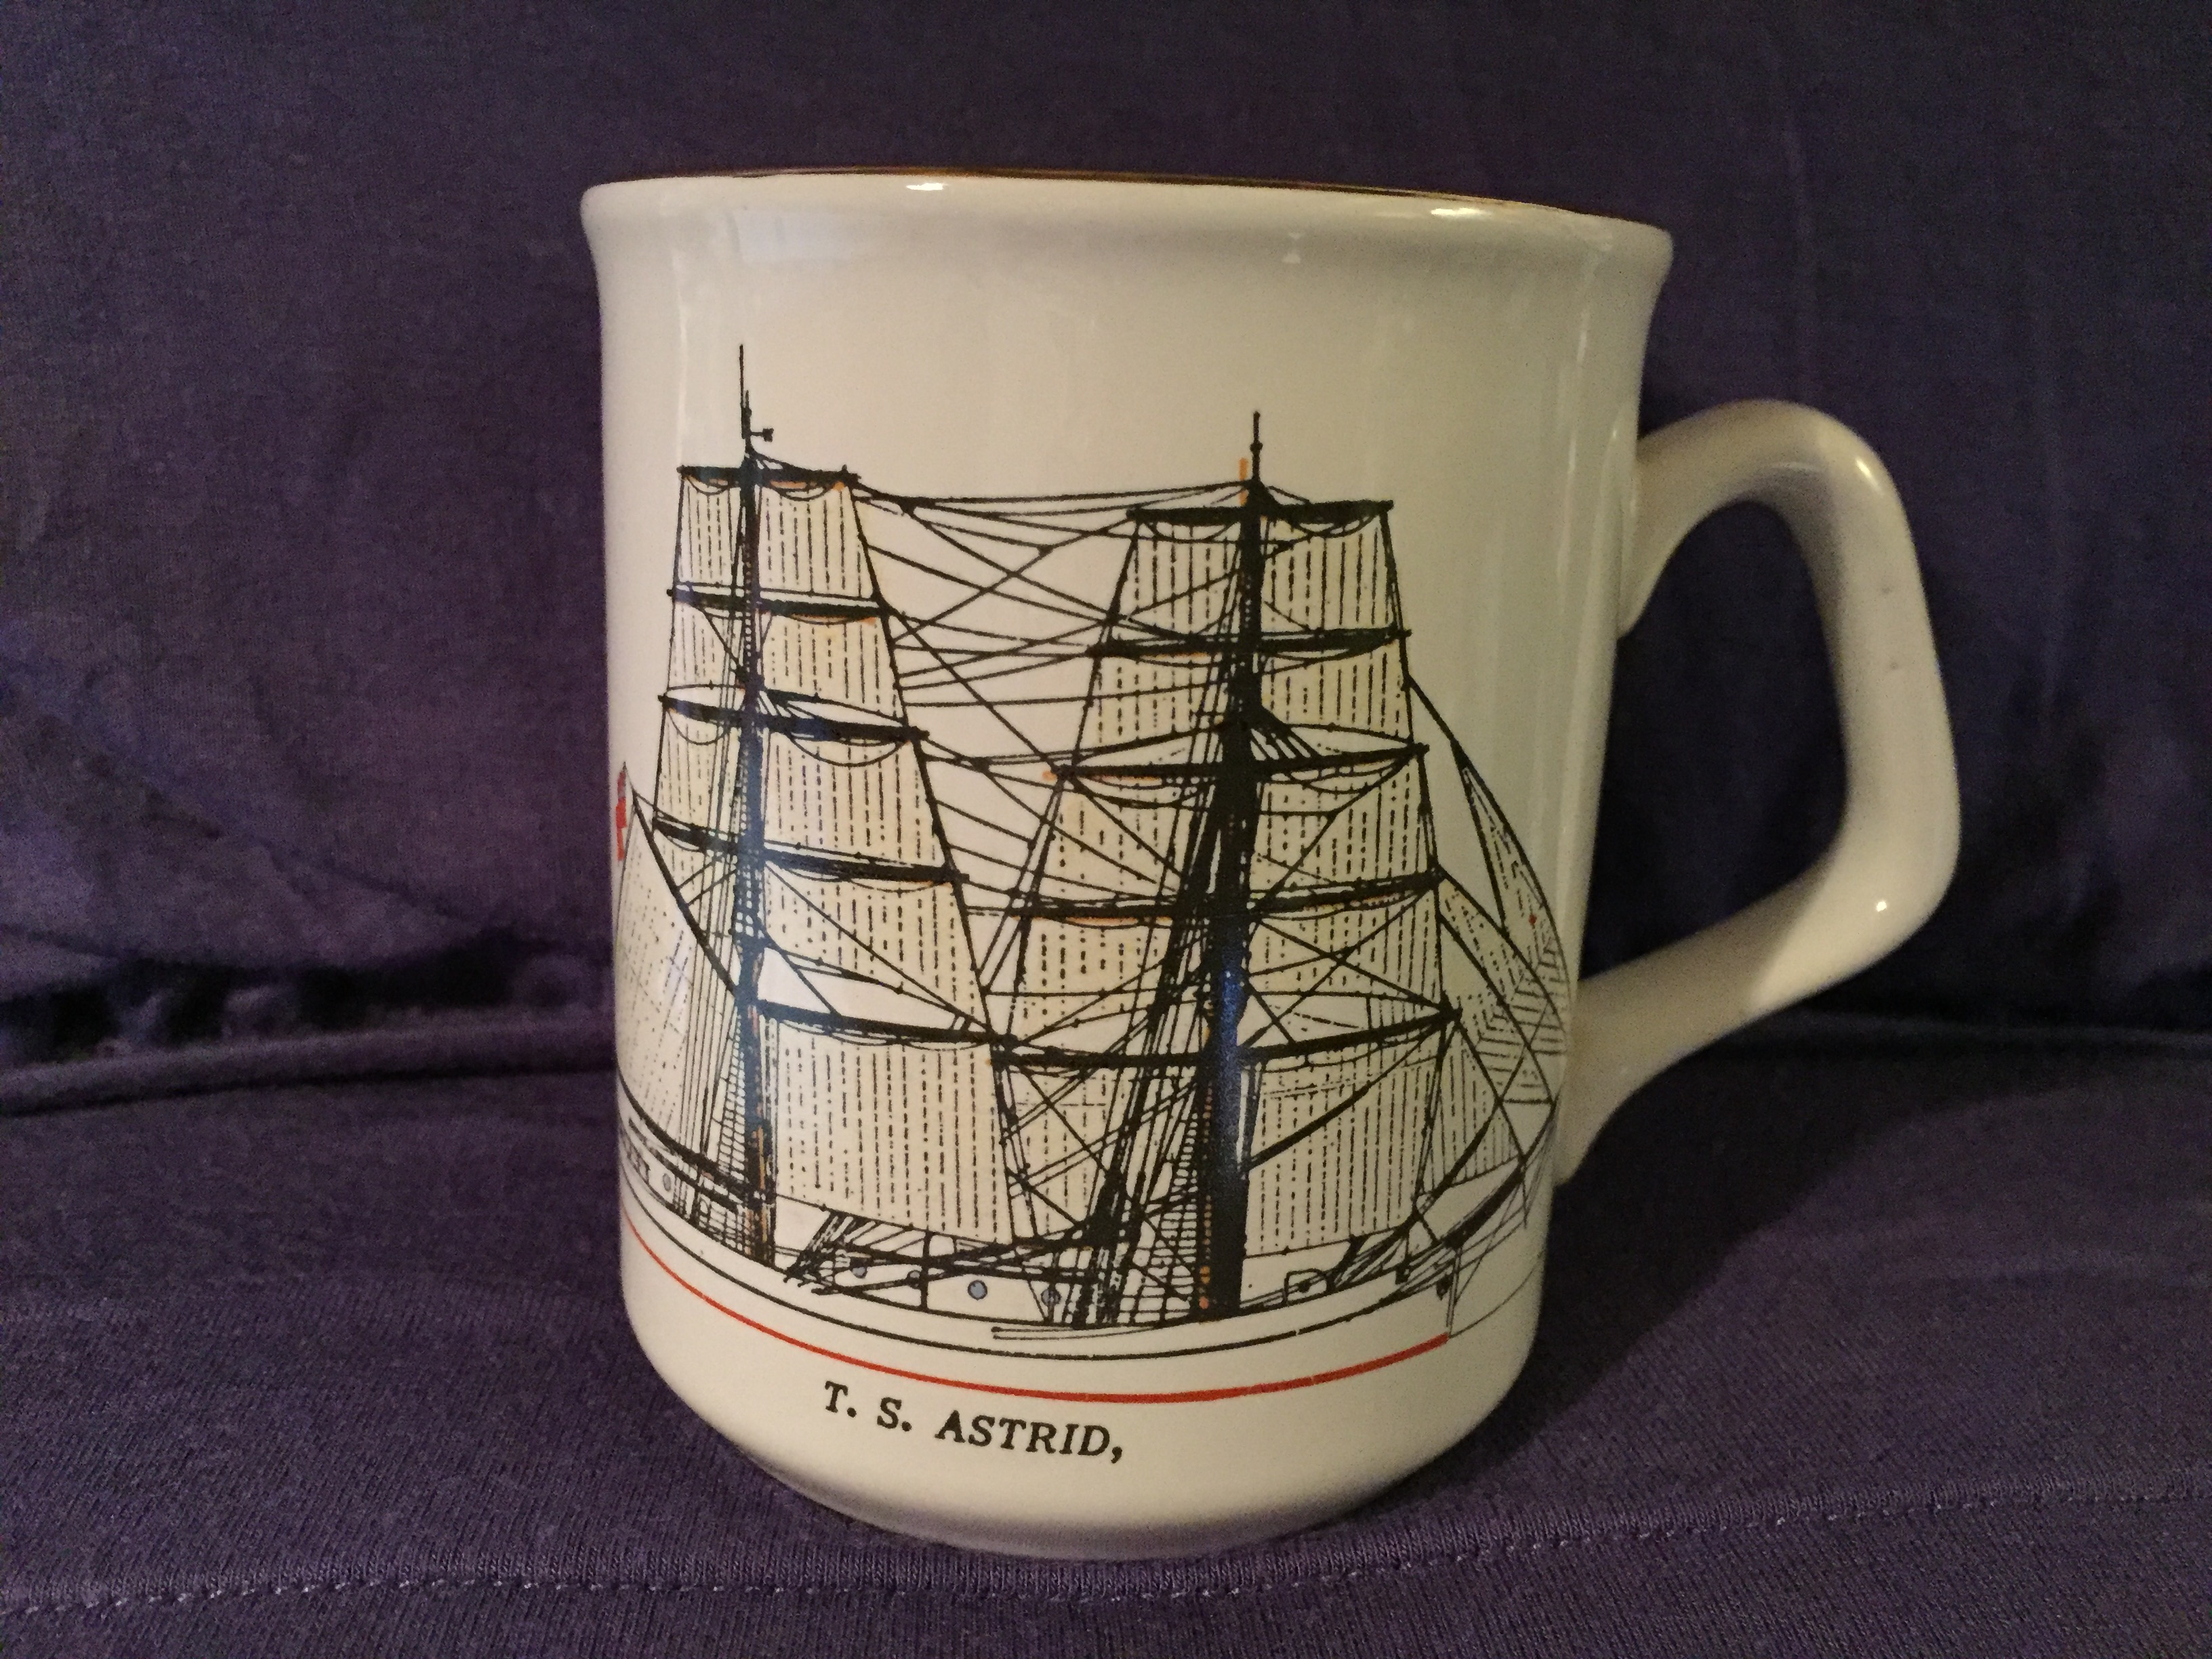 SOUVENIR MUG FROM THE VESSEL THE TS ASTRID